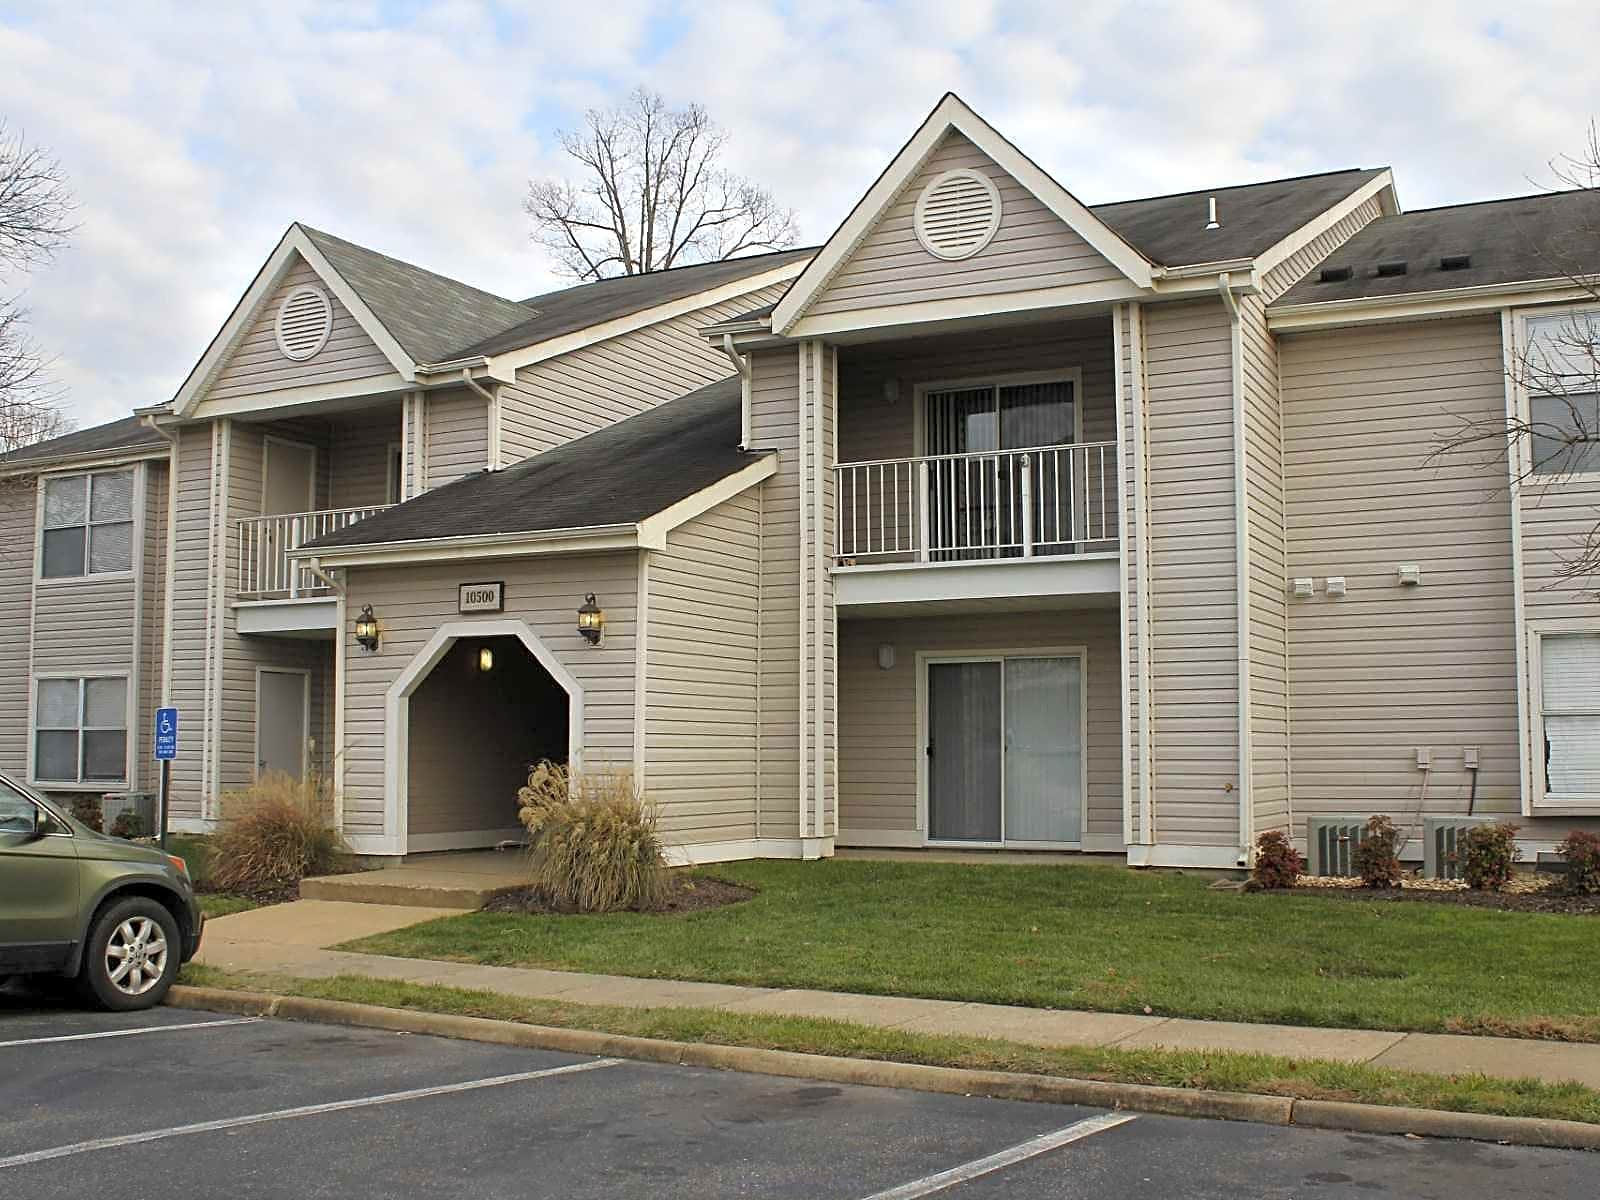 Photo: Fredericksburg Apartment for Rent - $1010.00 / month; 2 Bd & 2 Ba